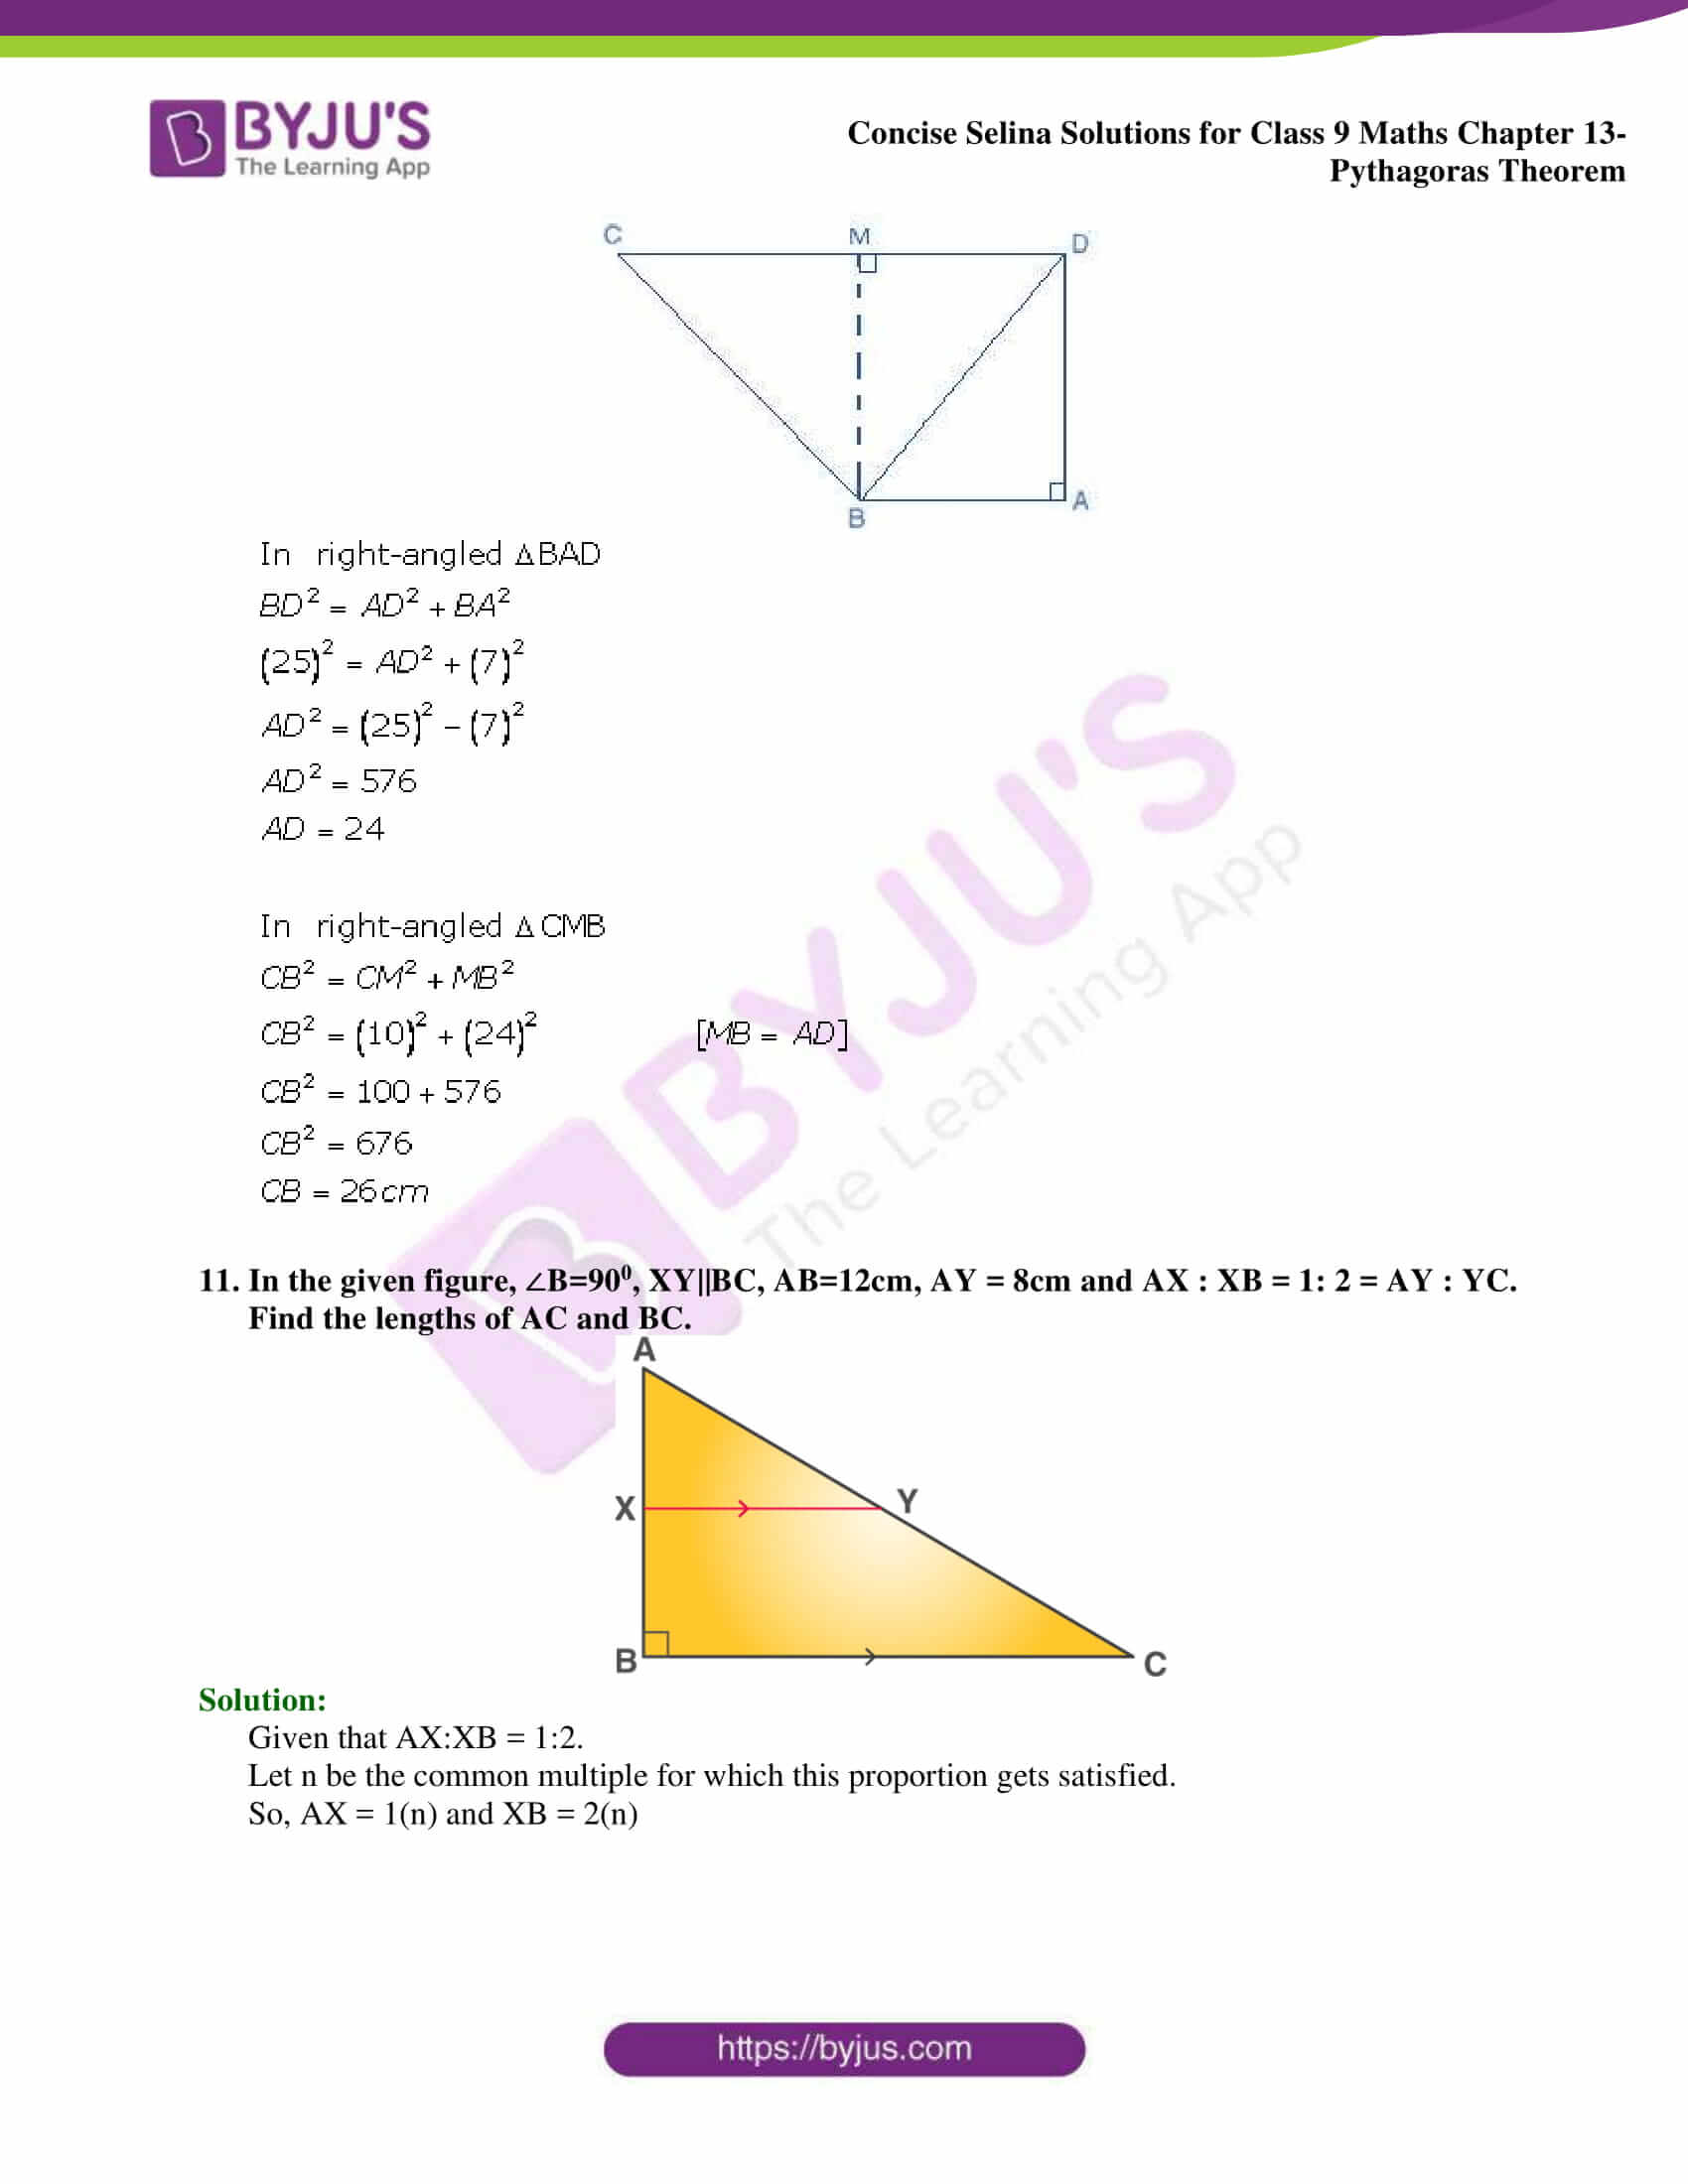 selina Solutions for Class 9 Maths Chapter 13 part 07